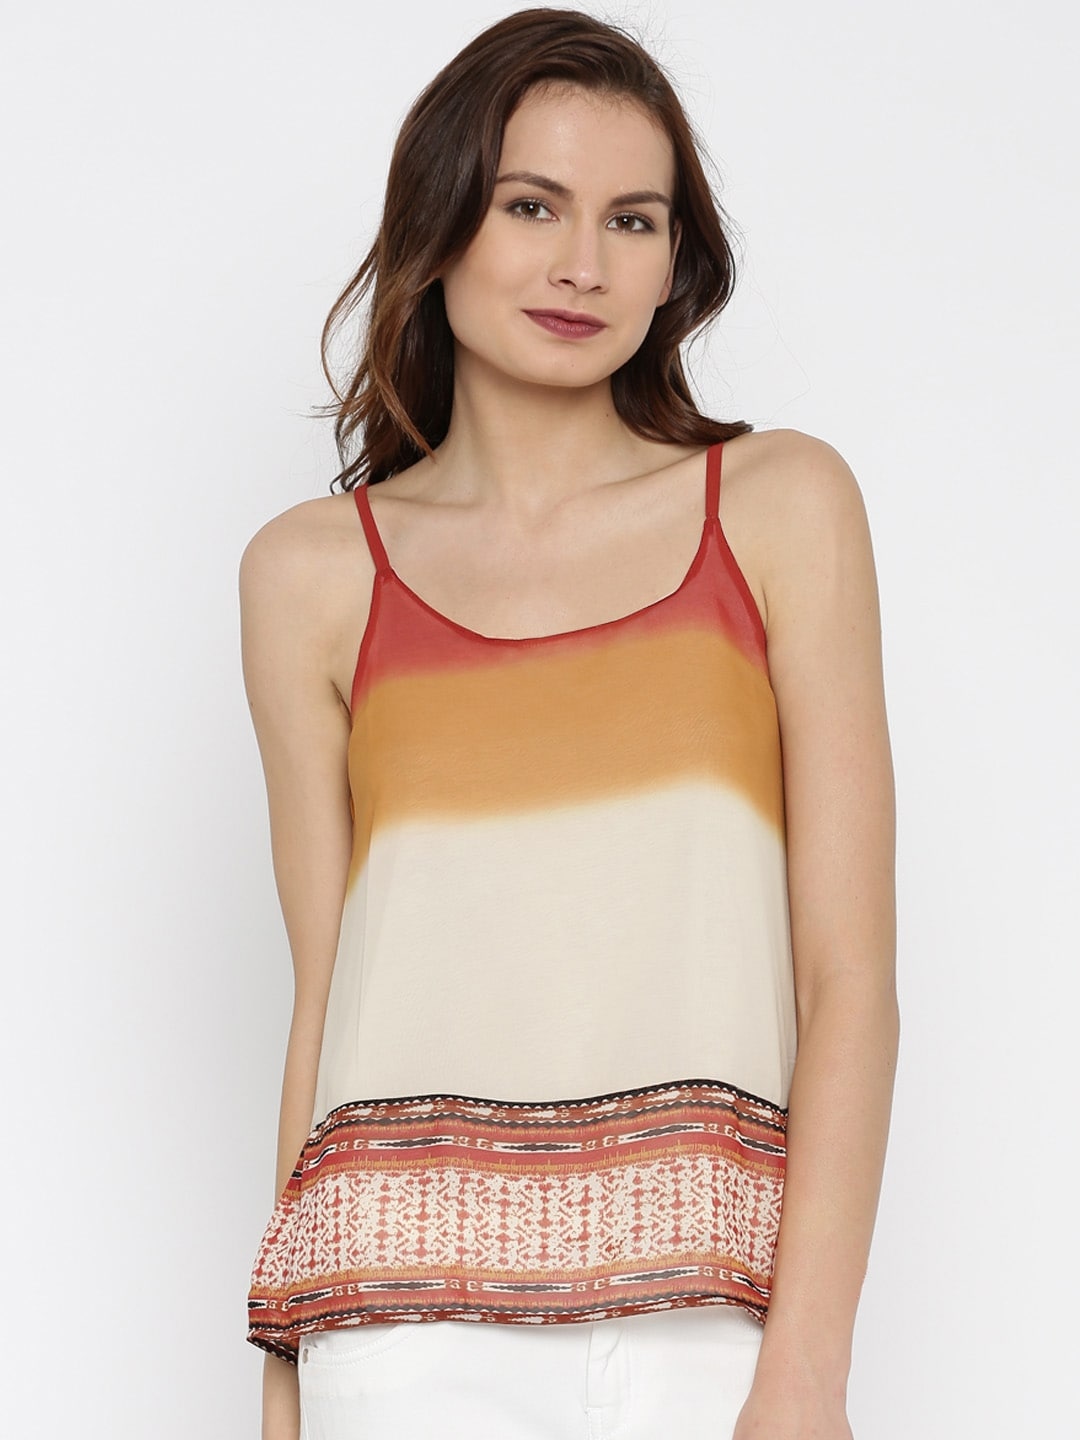 a9cda2a2945 109F - Exclusive 109F Online Store in India at Myntra